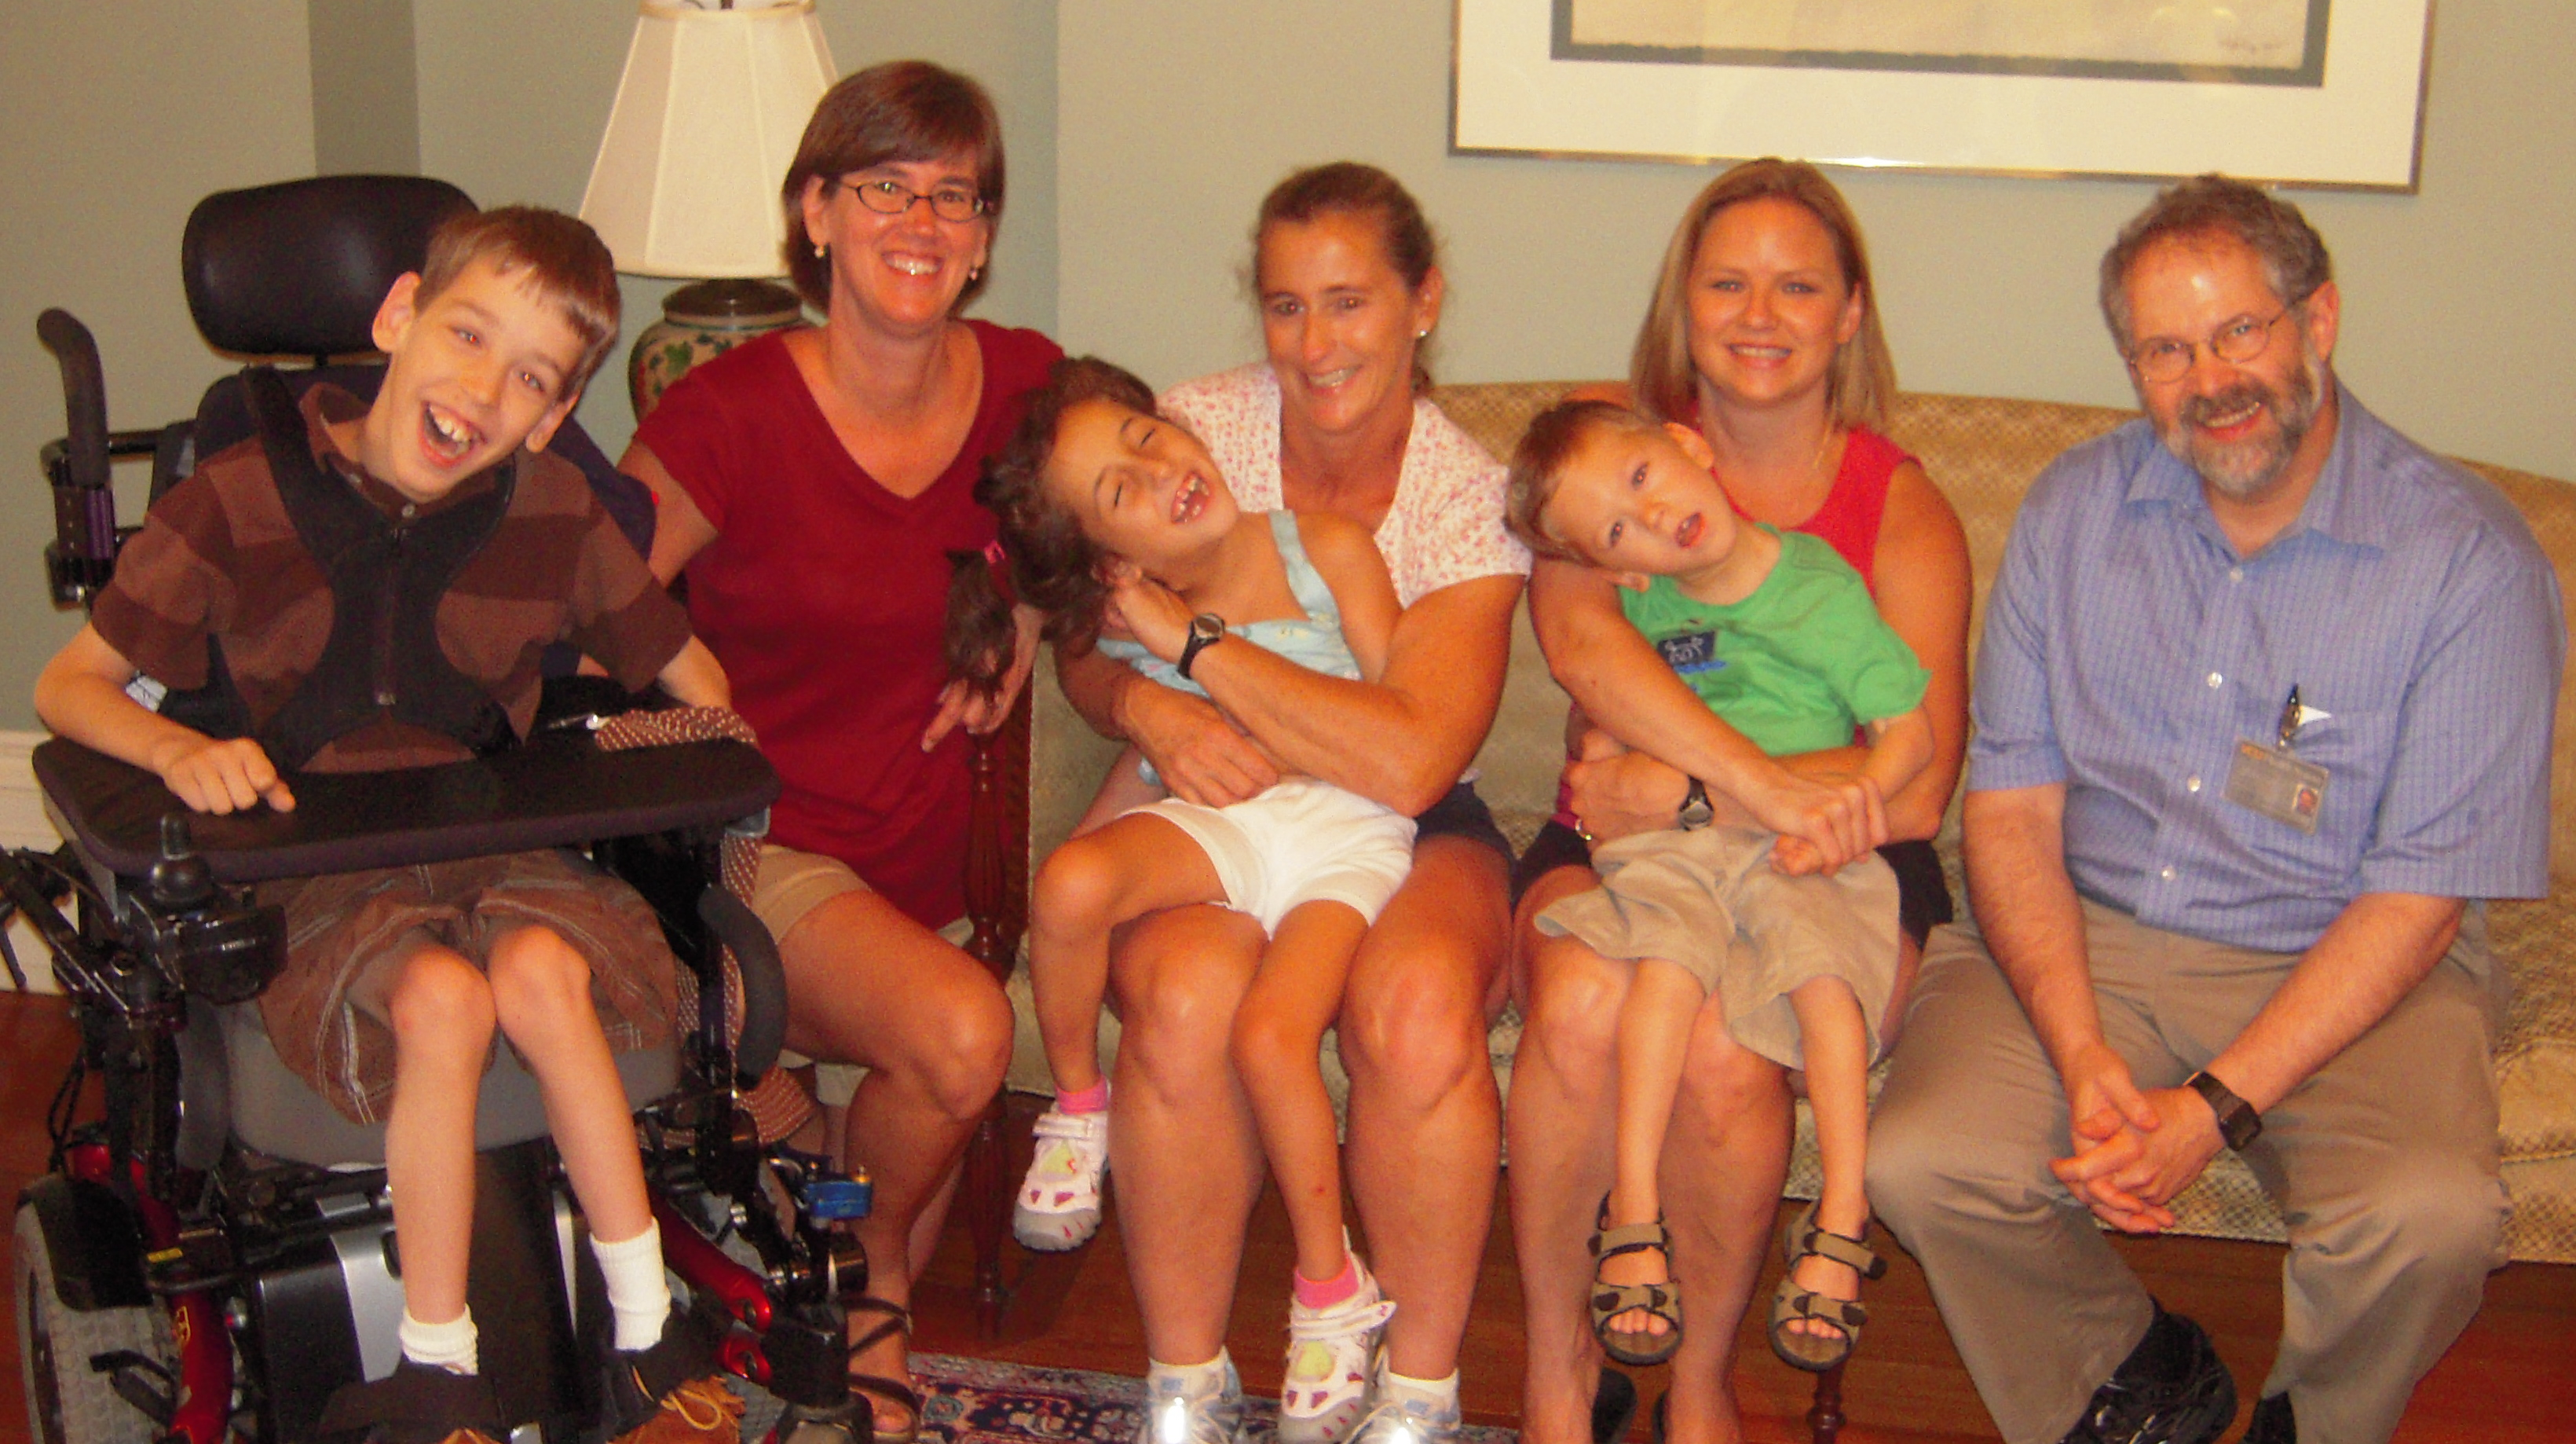 12-year old Justin in wheelchair with mom, Lexi held by her mom, boy held by mom, Dr. Shapiro